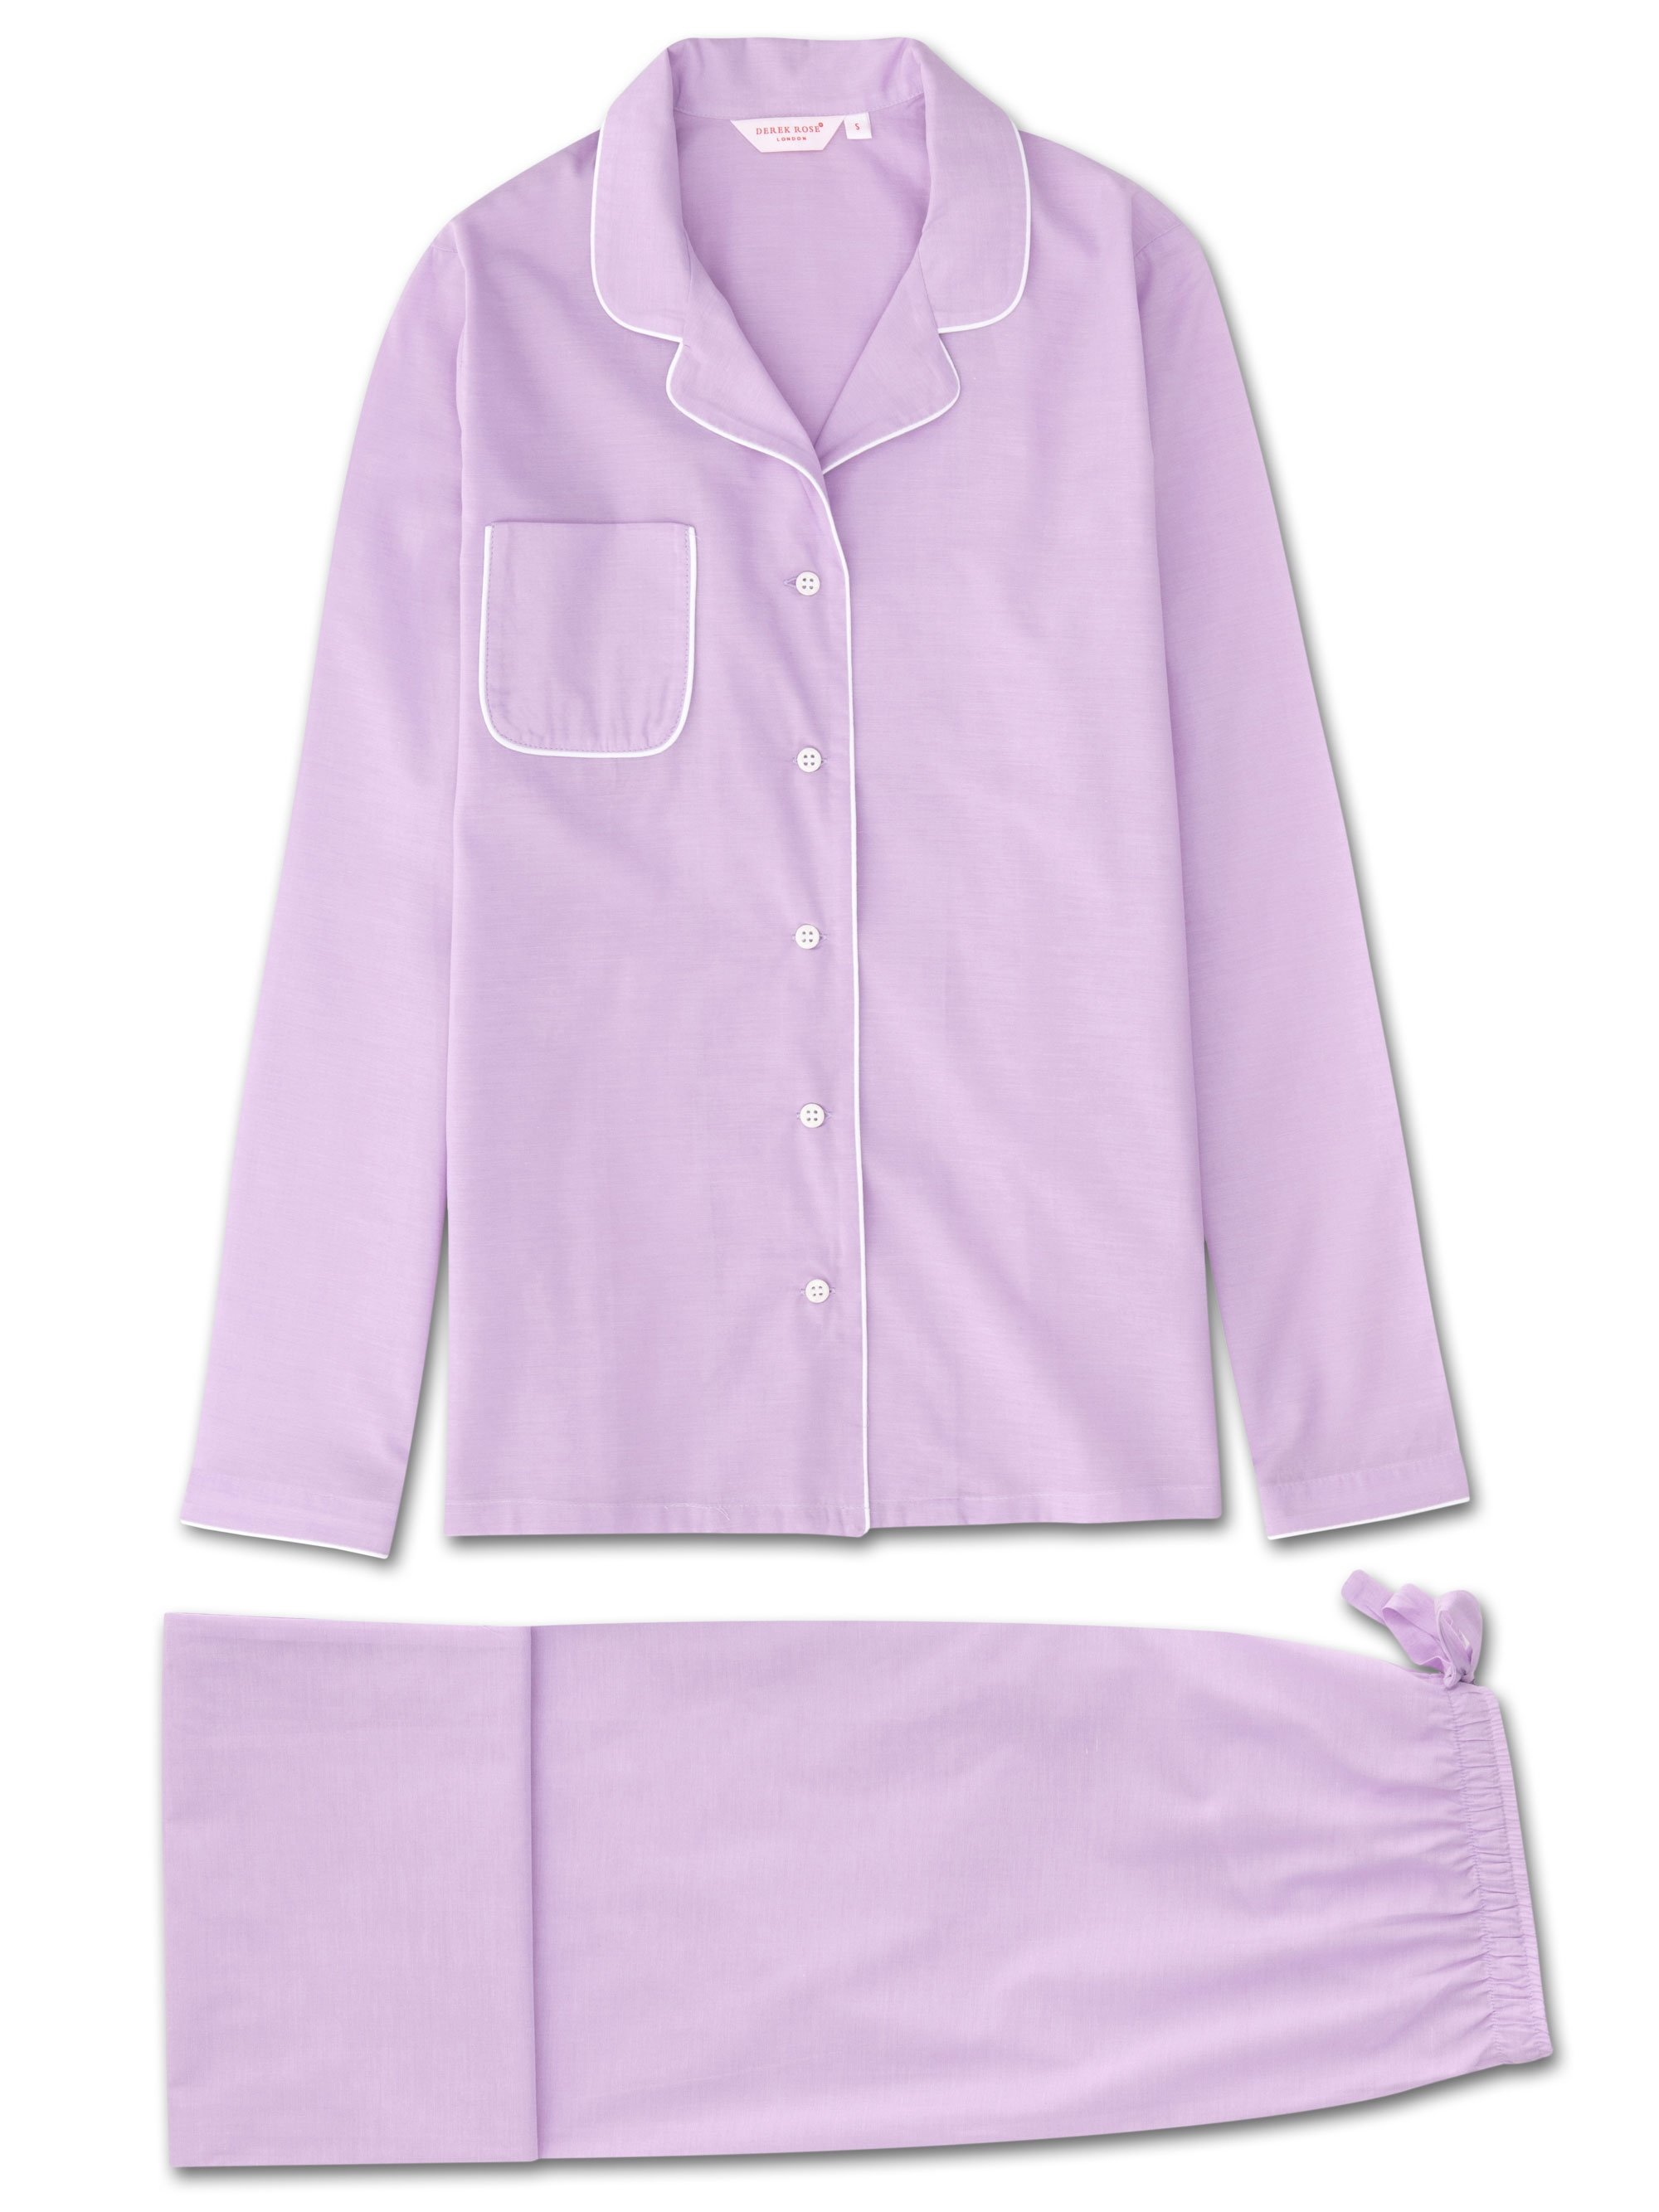 Women's Pyjamas Amalfi Cotton Batiste Lilac